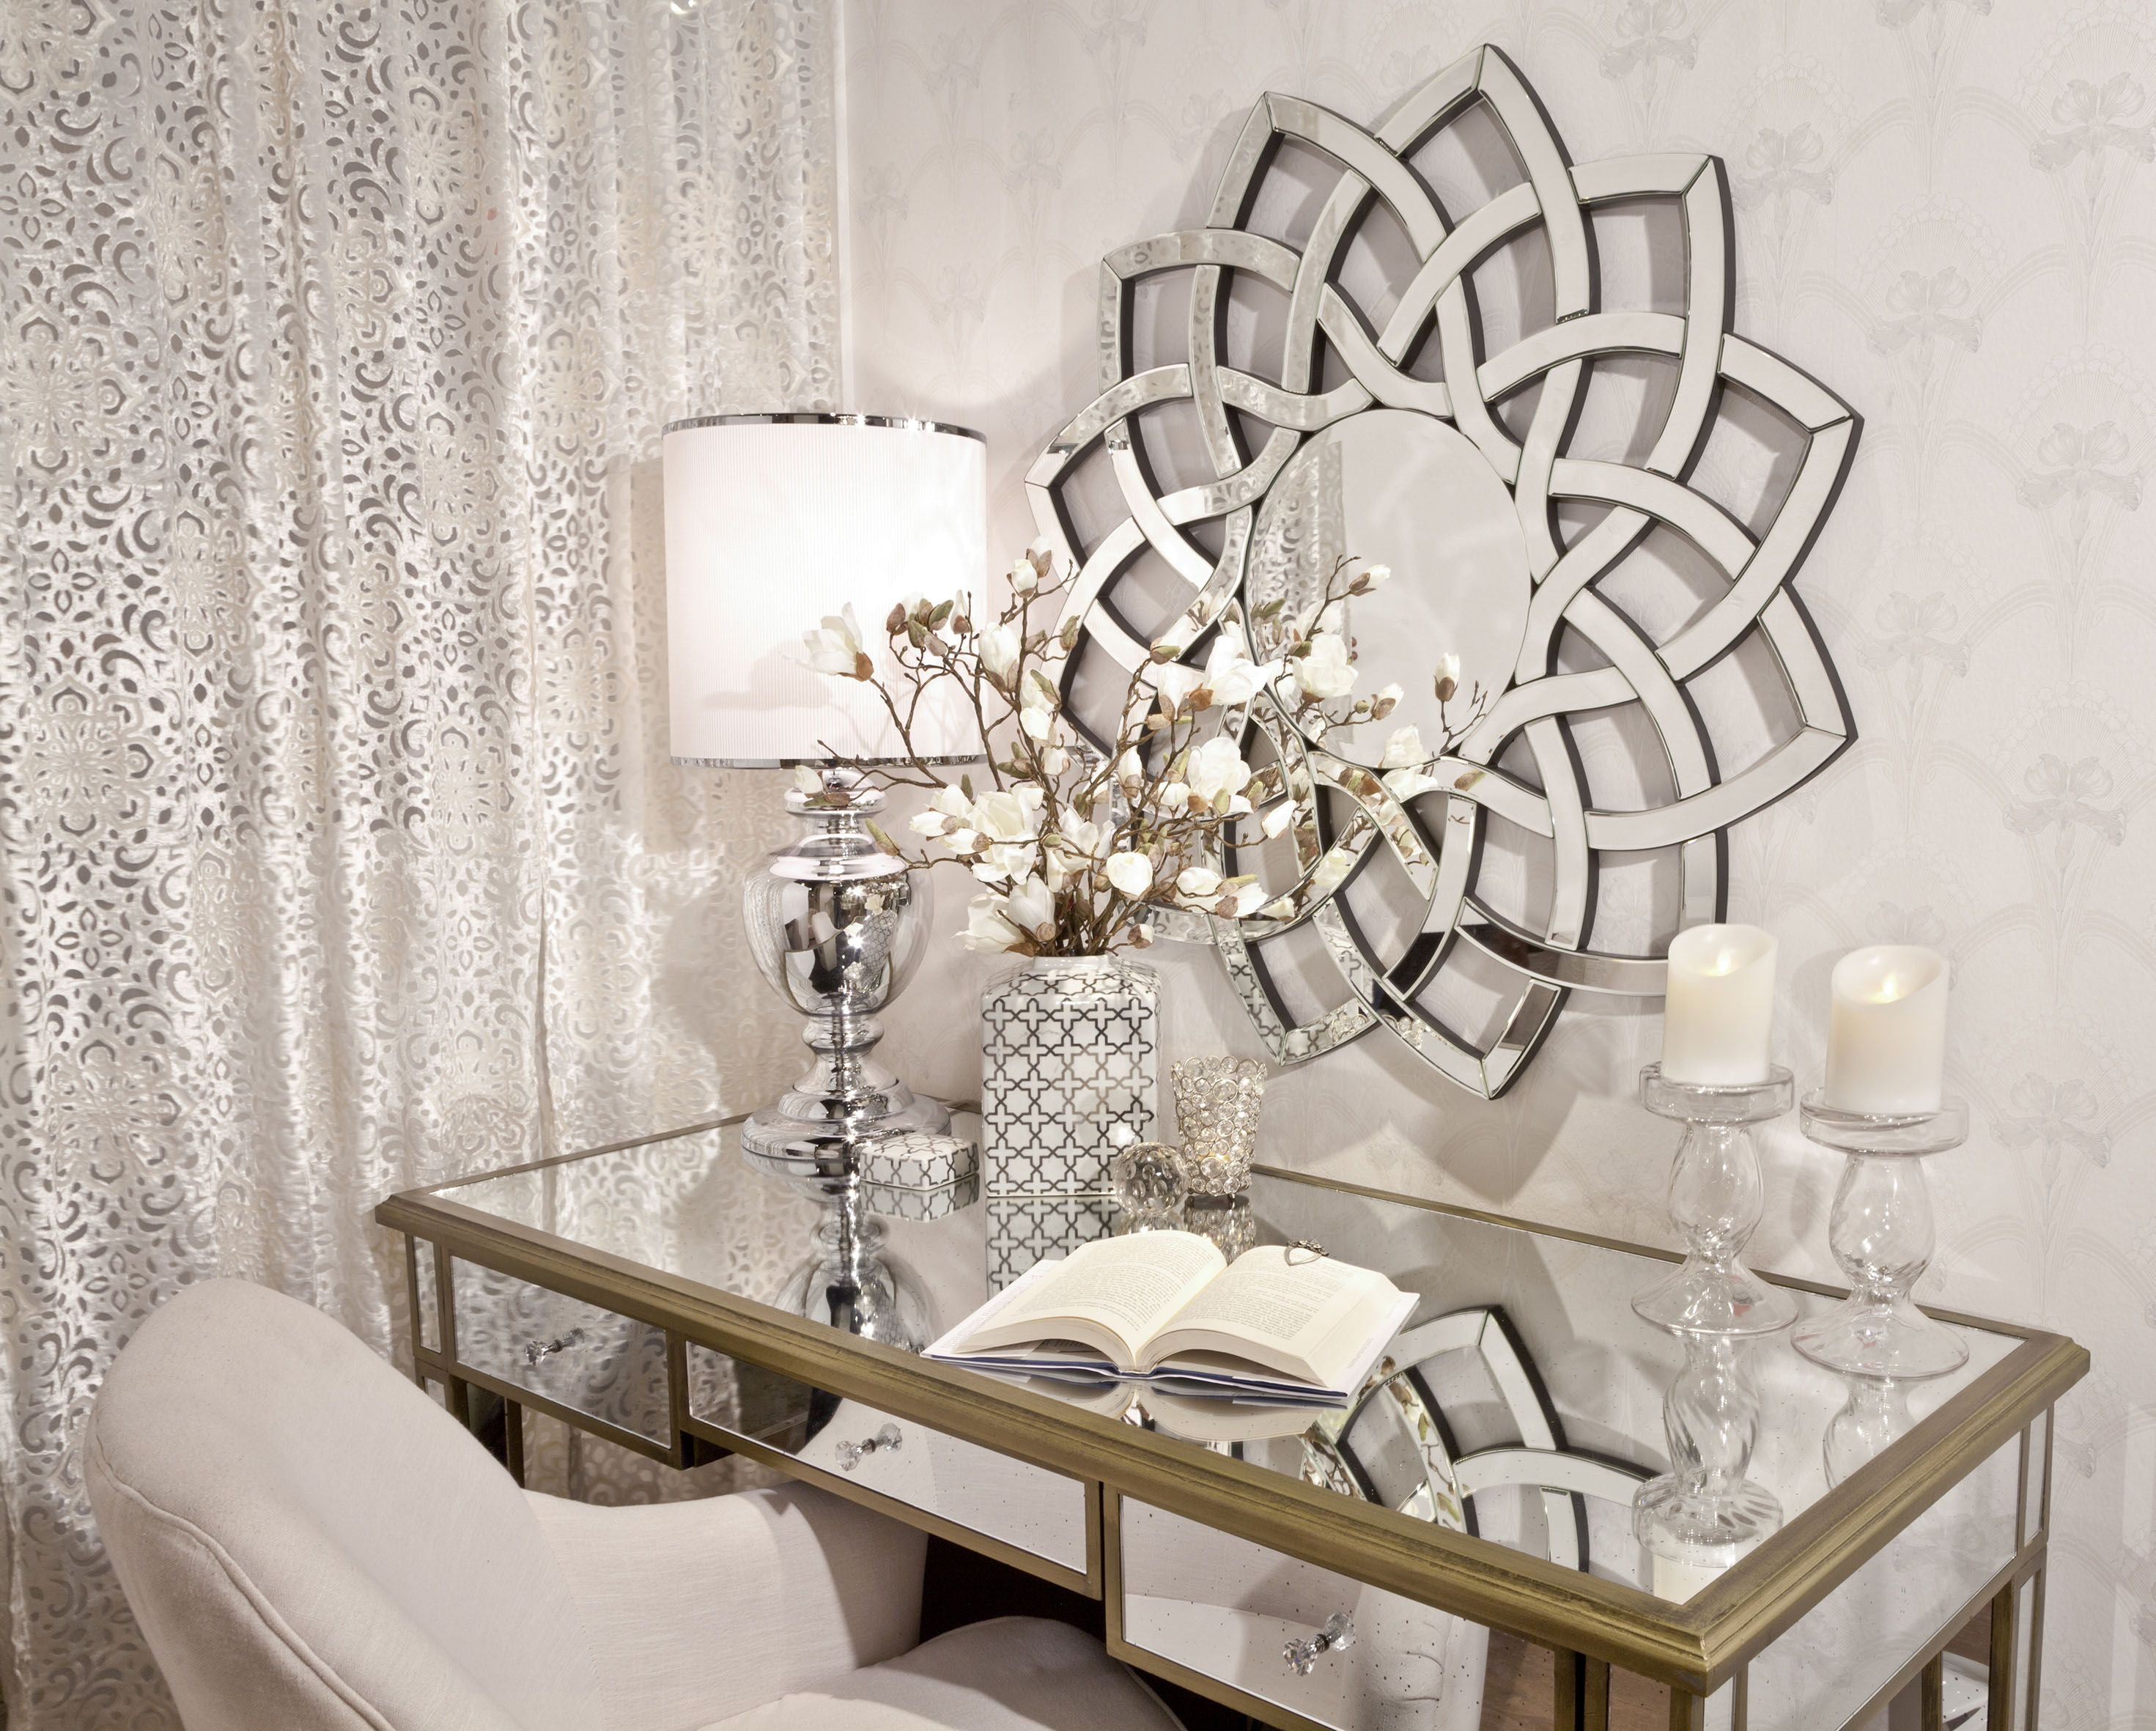 Bedroom Opulent Antique mirrored dressing table